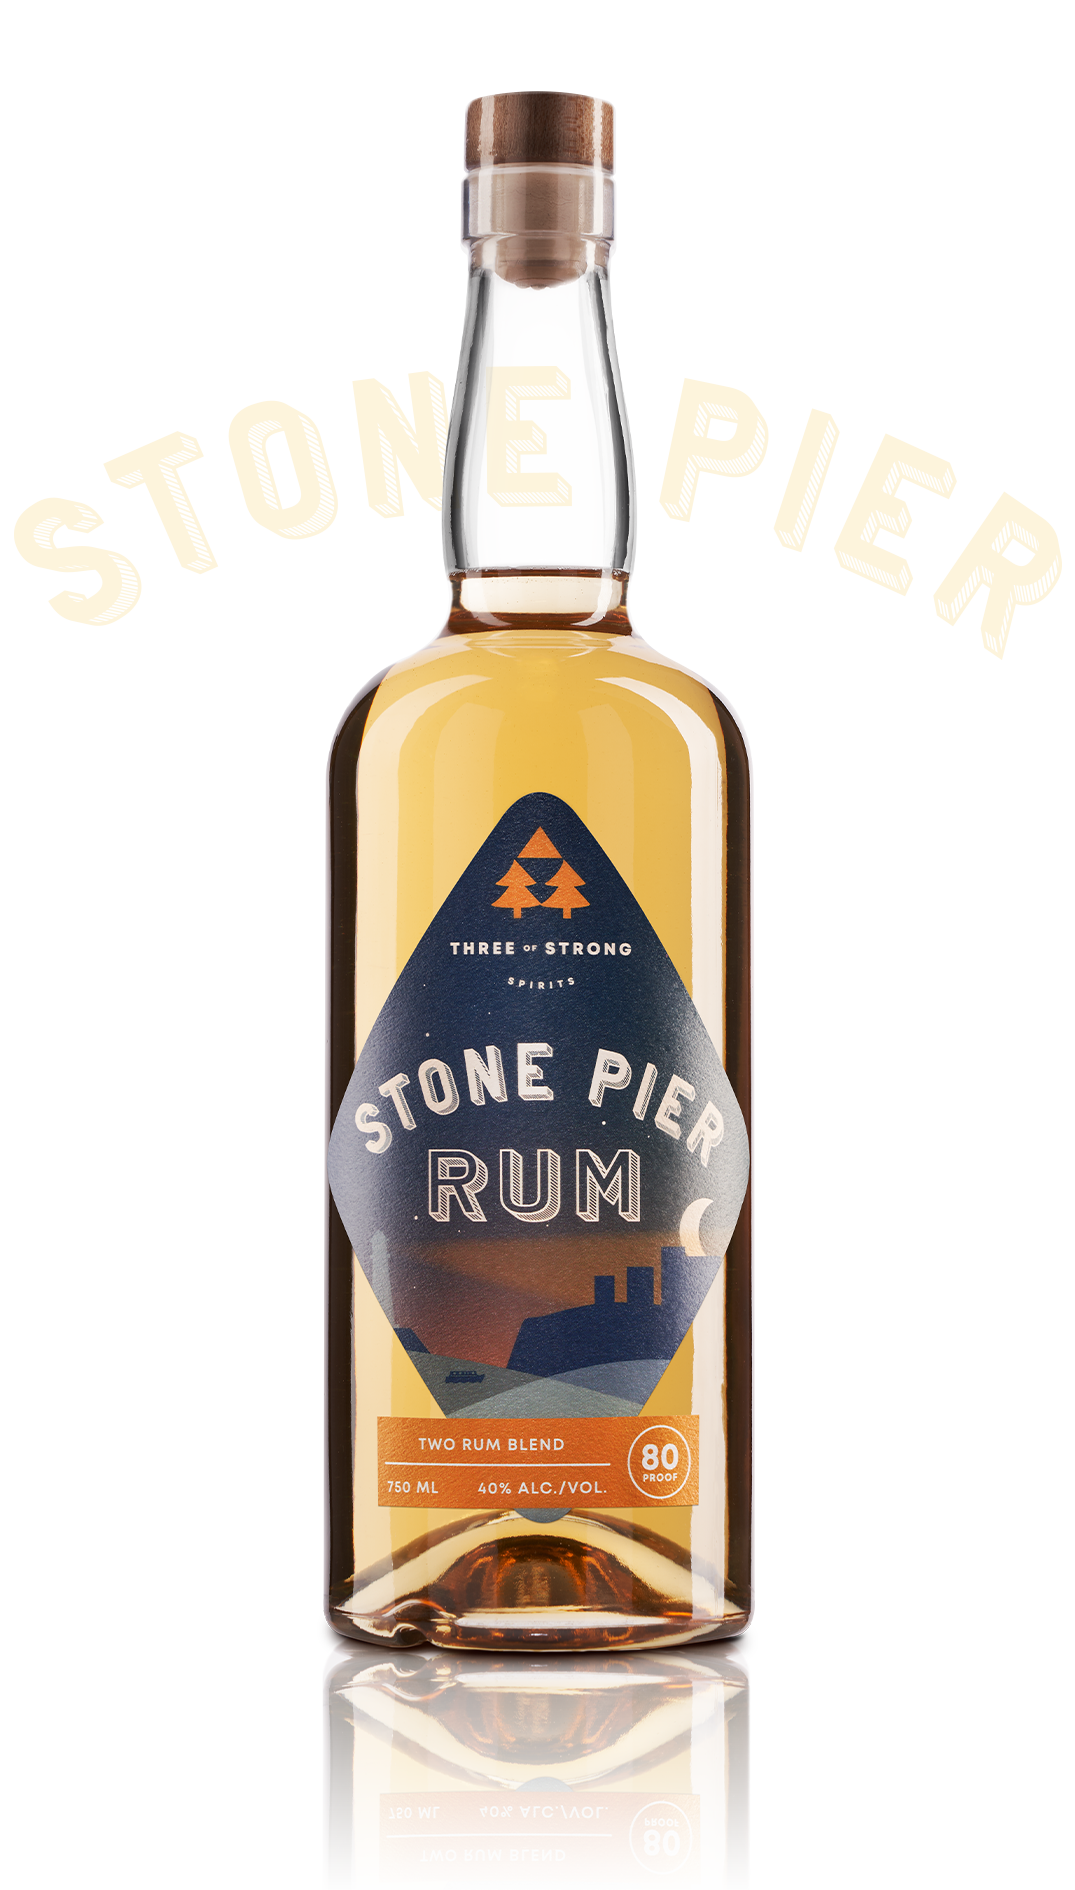 three of strong spirits, stone pier rum